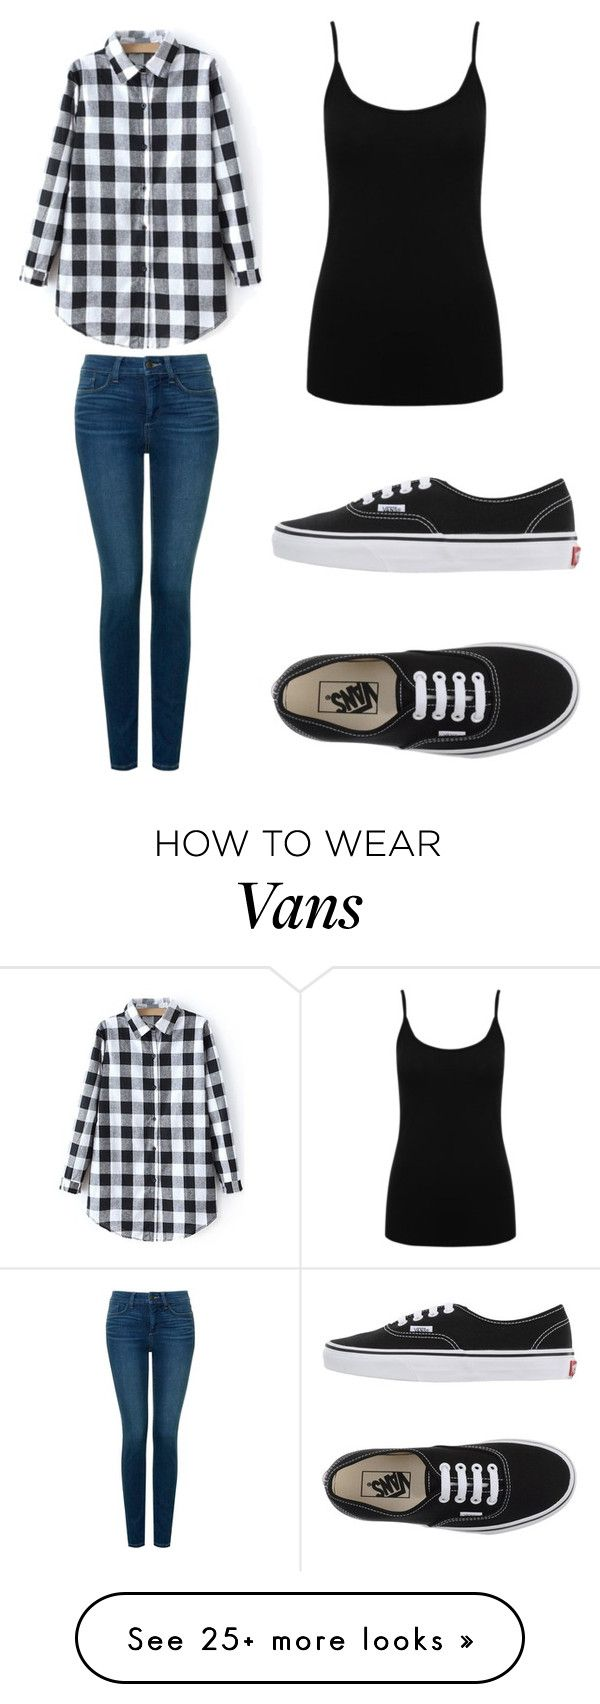 """""""I like my style"""" by macyyyyyyyy on Polyvore featuring Vans, NYDJ, M&Co, women's clothing, women's fashion, women, female, woman, misses and juniors"""